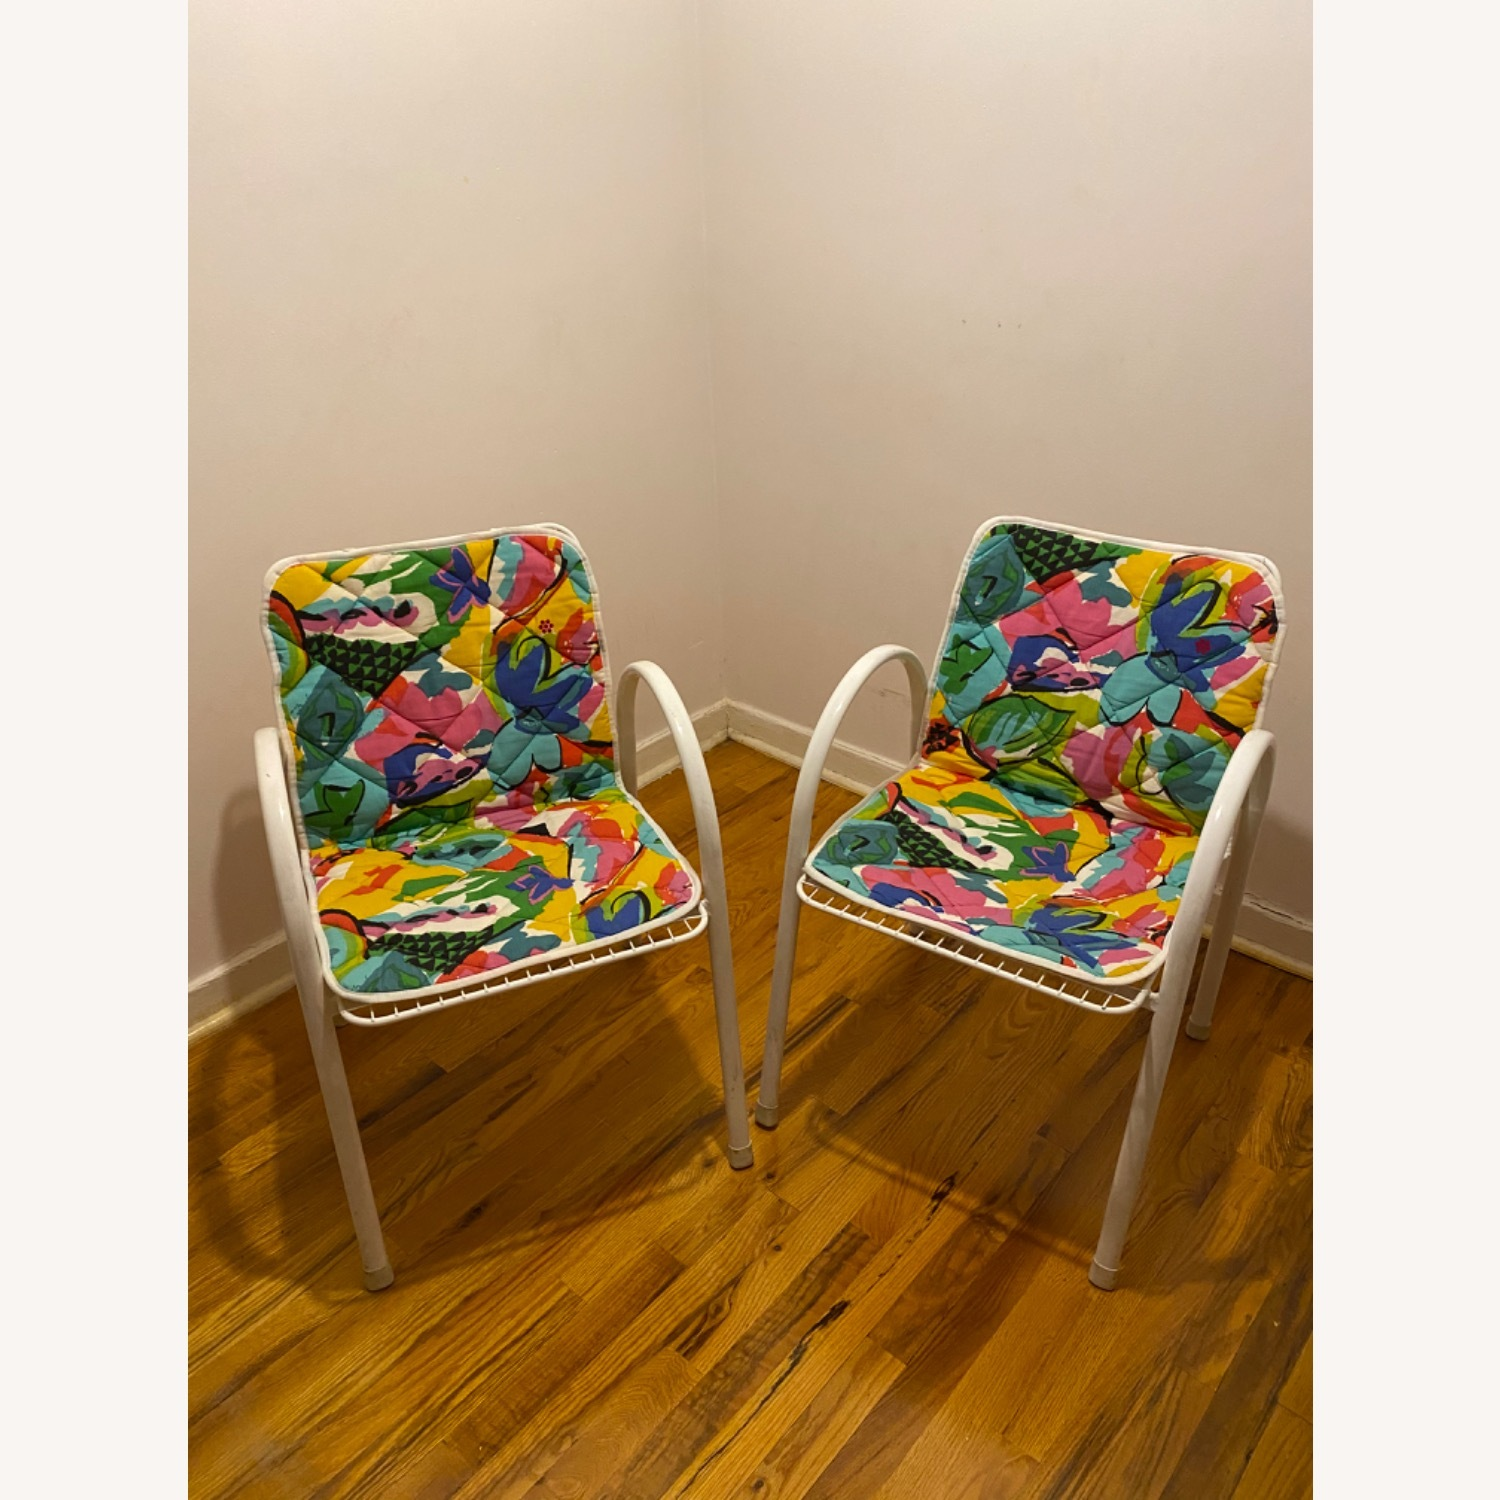 Vintage Garden Chairs With Seat Covers - image-2